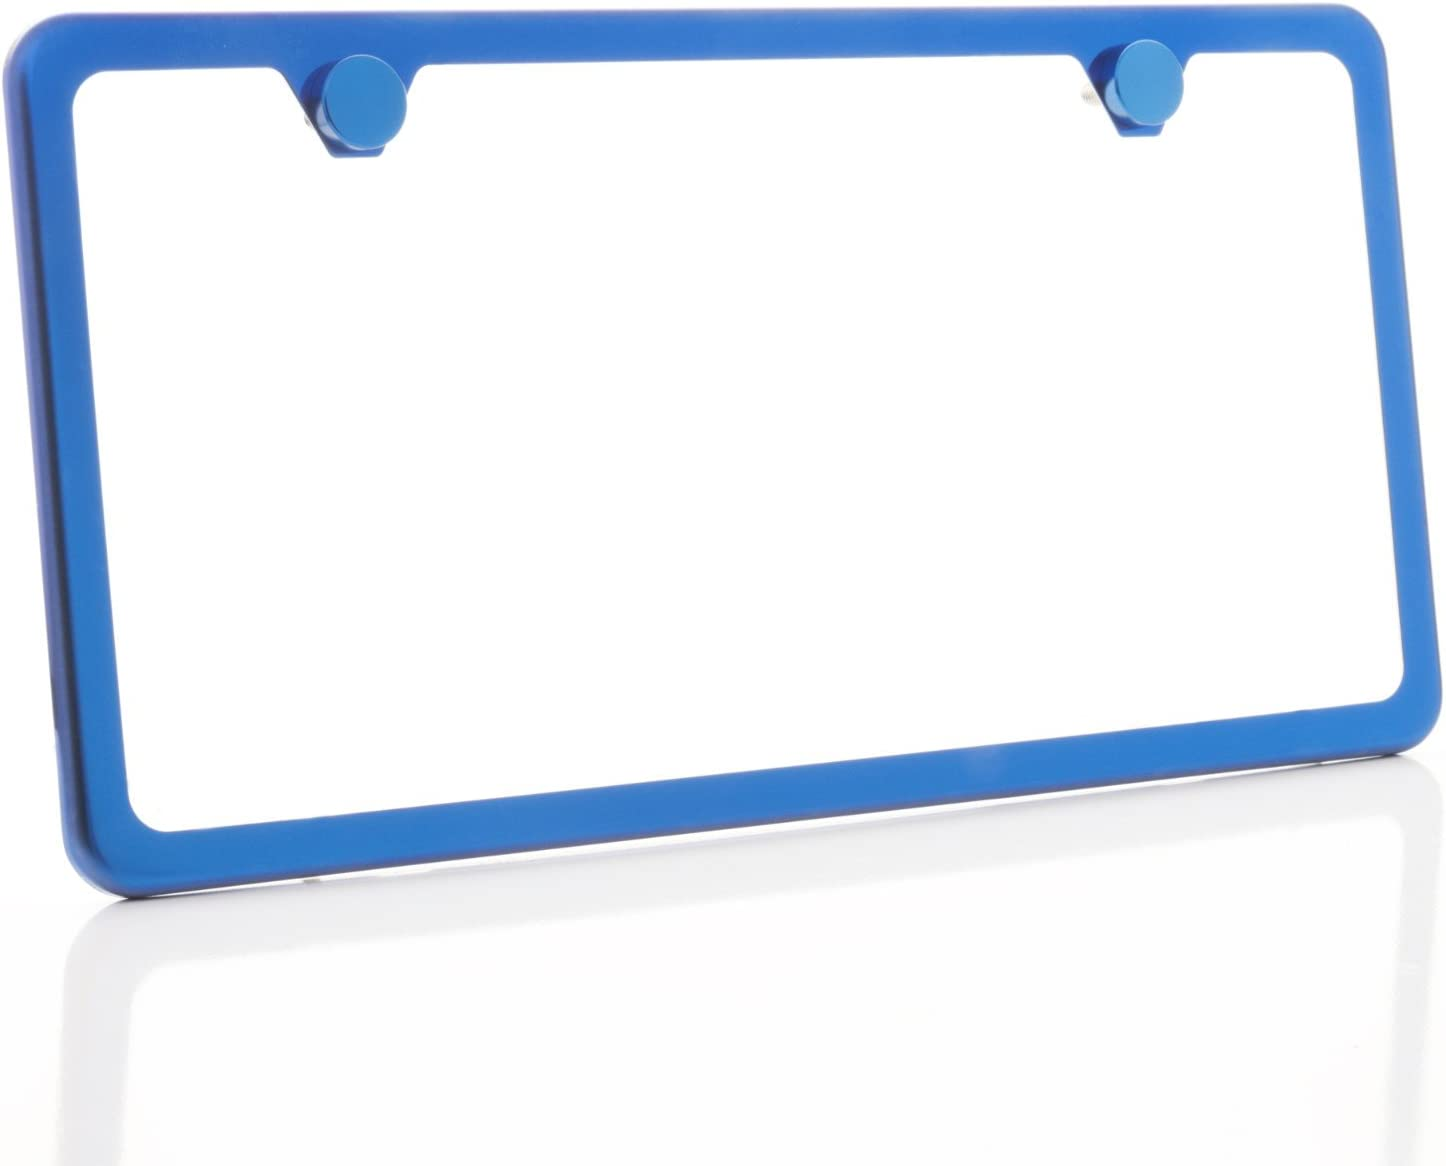 KA LEGEND One Blue Chrome T304 Stainless Steel License Plate Frame Holder Front Or Rear Bracket with Aluminum Screw Cap